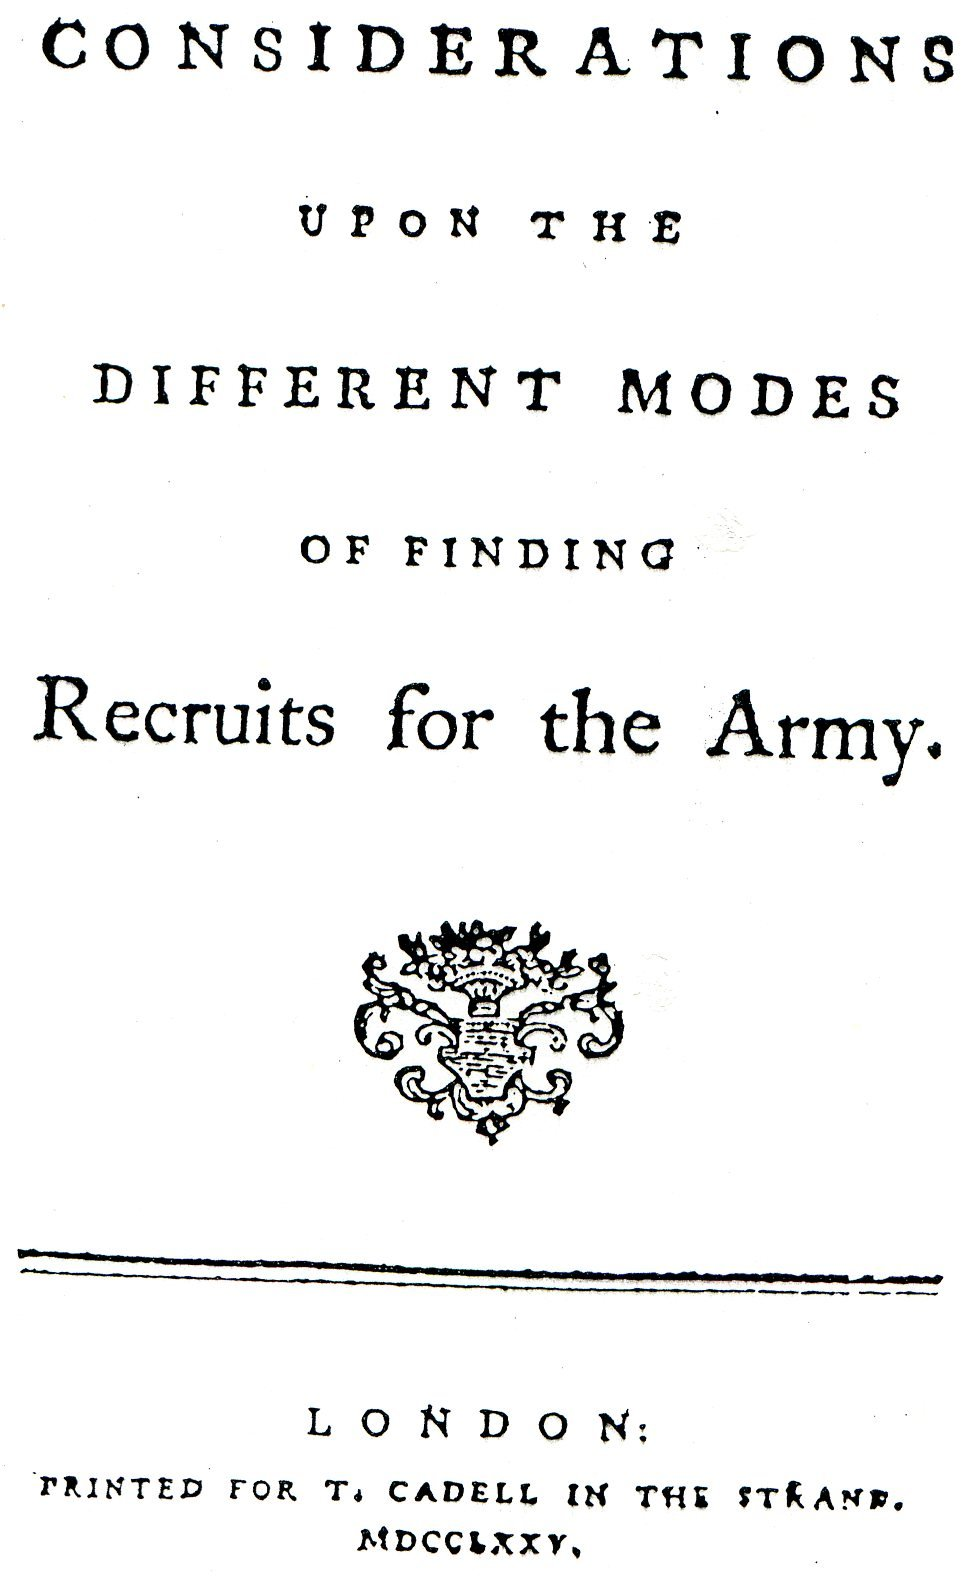 Considerations Upon the Different Modes of Finding Recruits for the Army